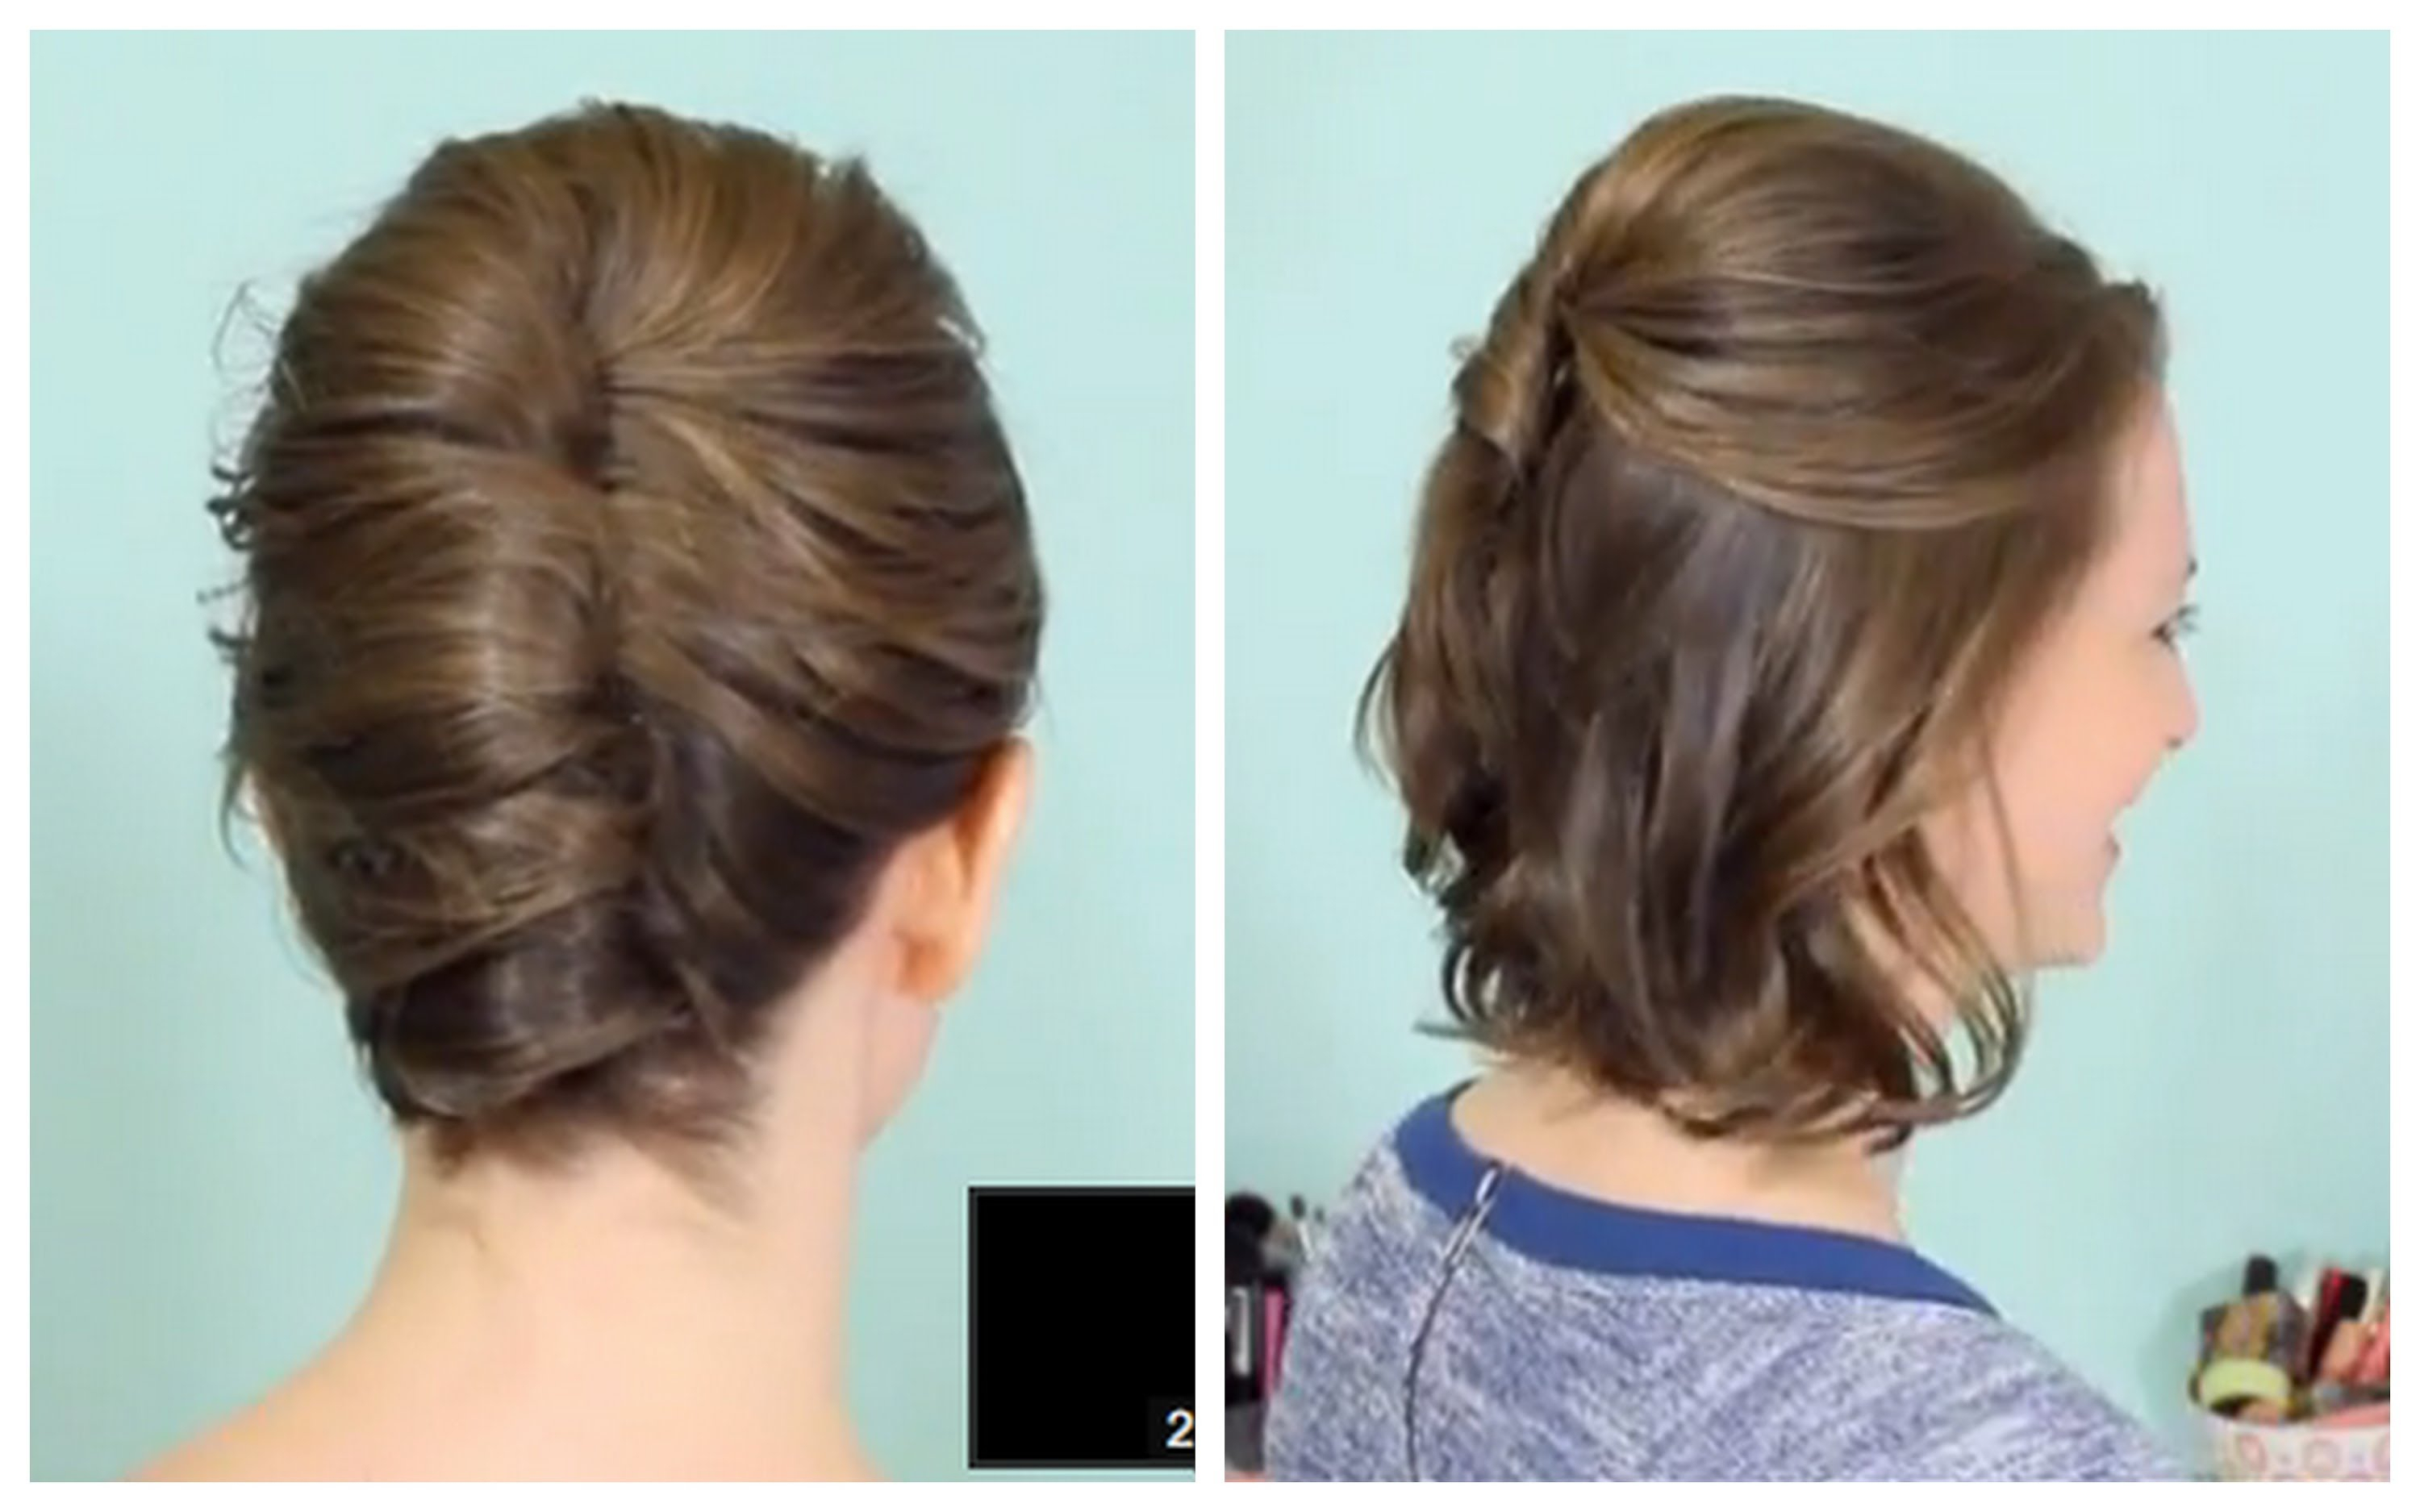 Transform Half Up Half Down Short Hairstyles For Updo Short Pertaining To Half Up Half Down Short Hairstyles (View 18 of 25)